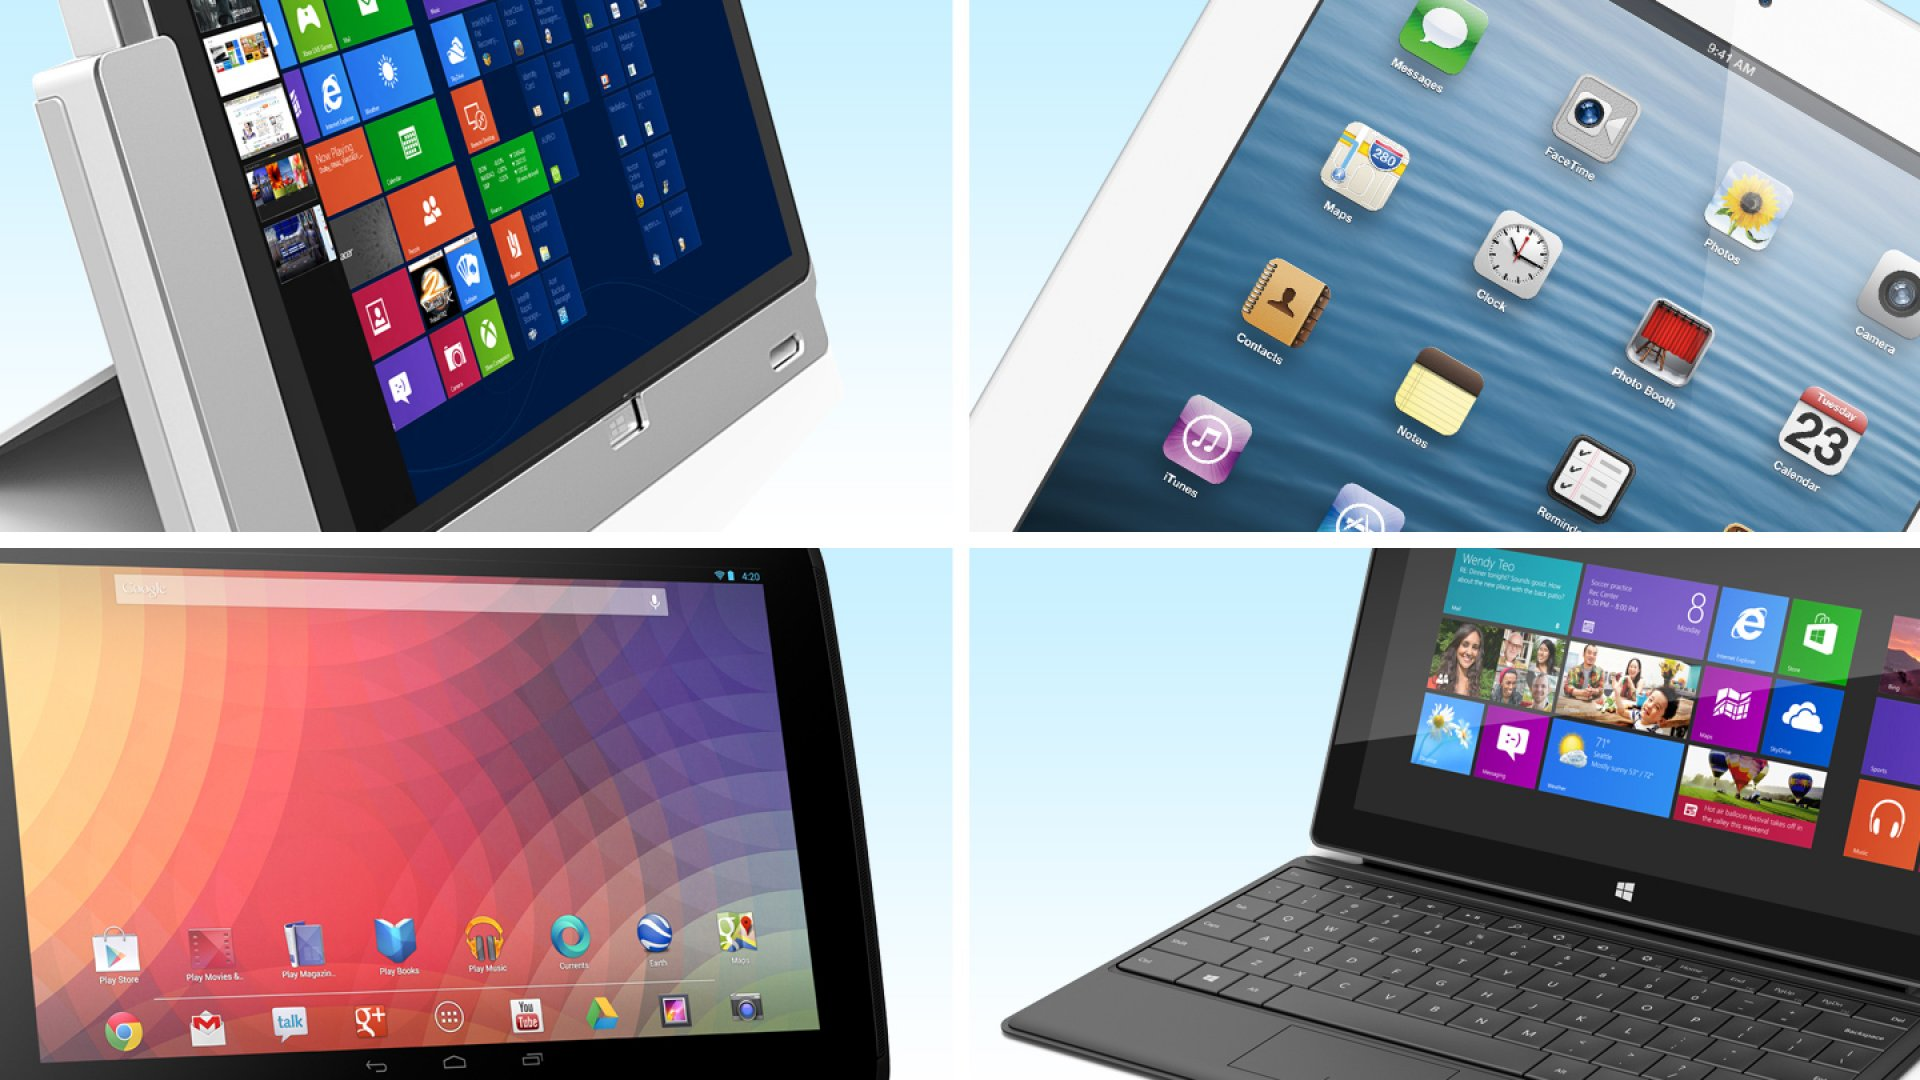 Acer Iconia W700 (top left), iPad Fourth Generation (top right), Google Nexus 10 (bottom left), Surface with Windows RT (bottom right)